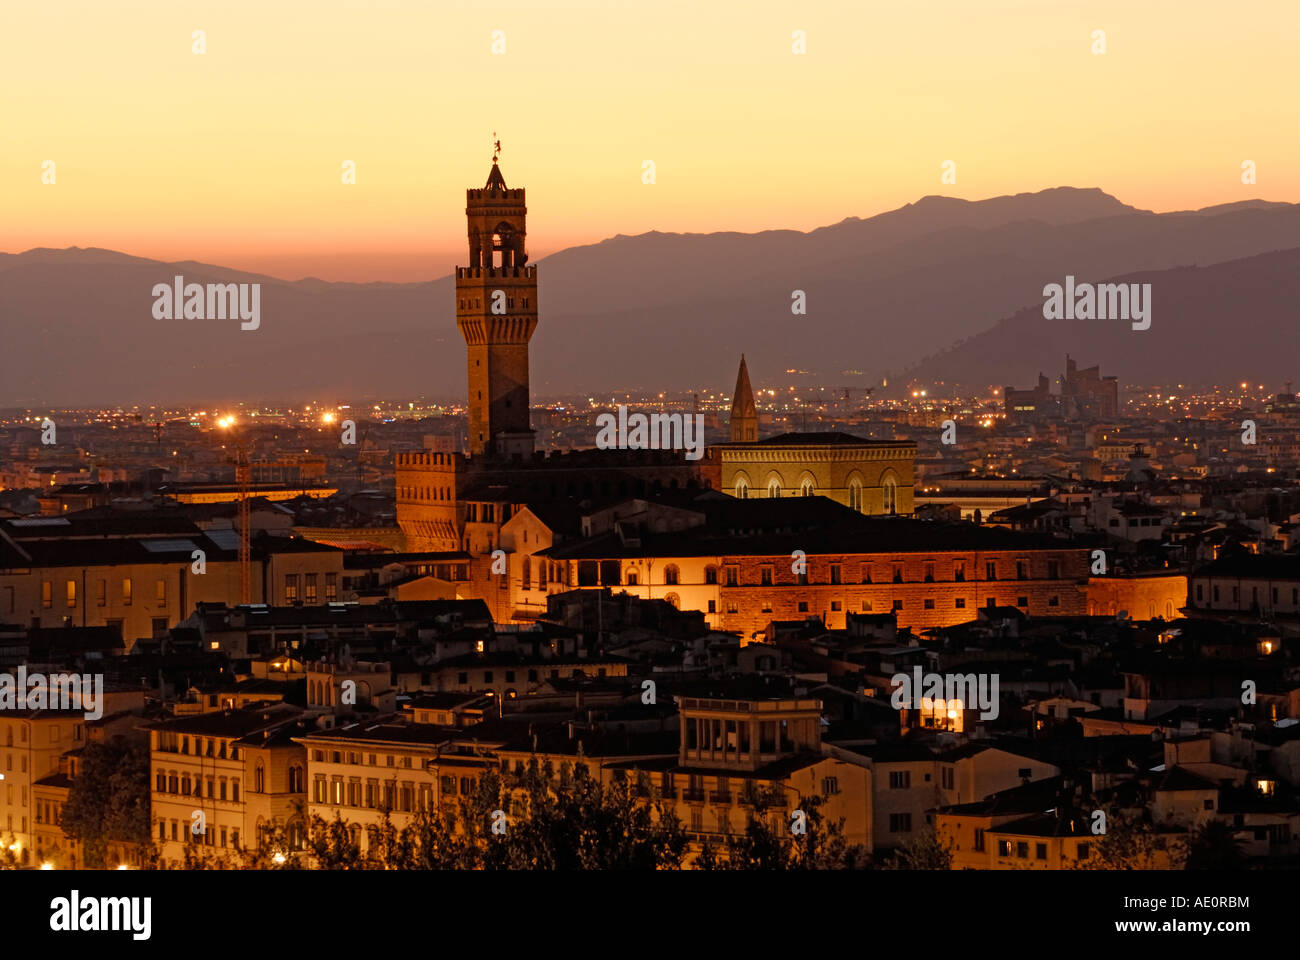 Florence skyline at night dusk with the tower of the Palazzo Vecchio - Stock Image